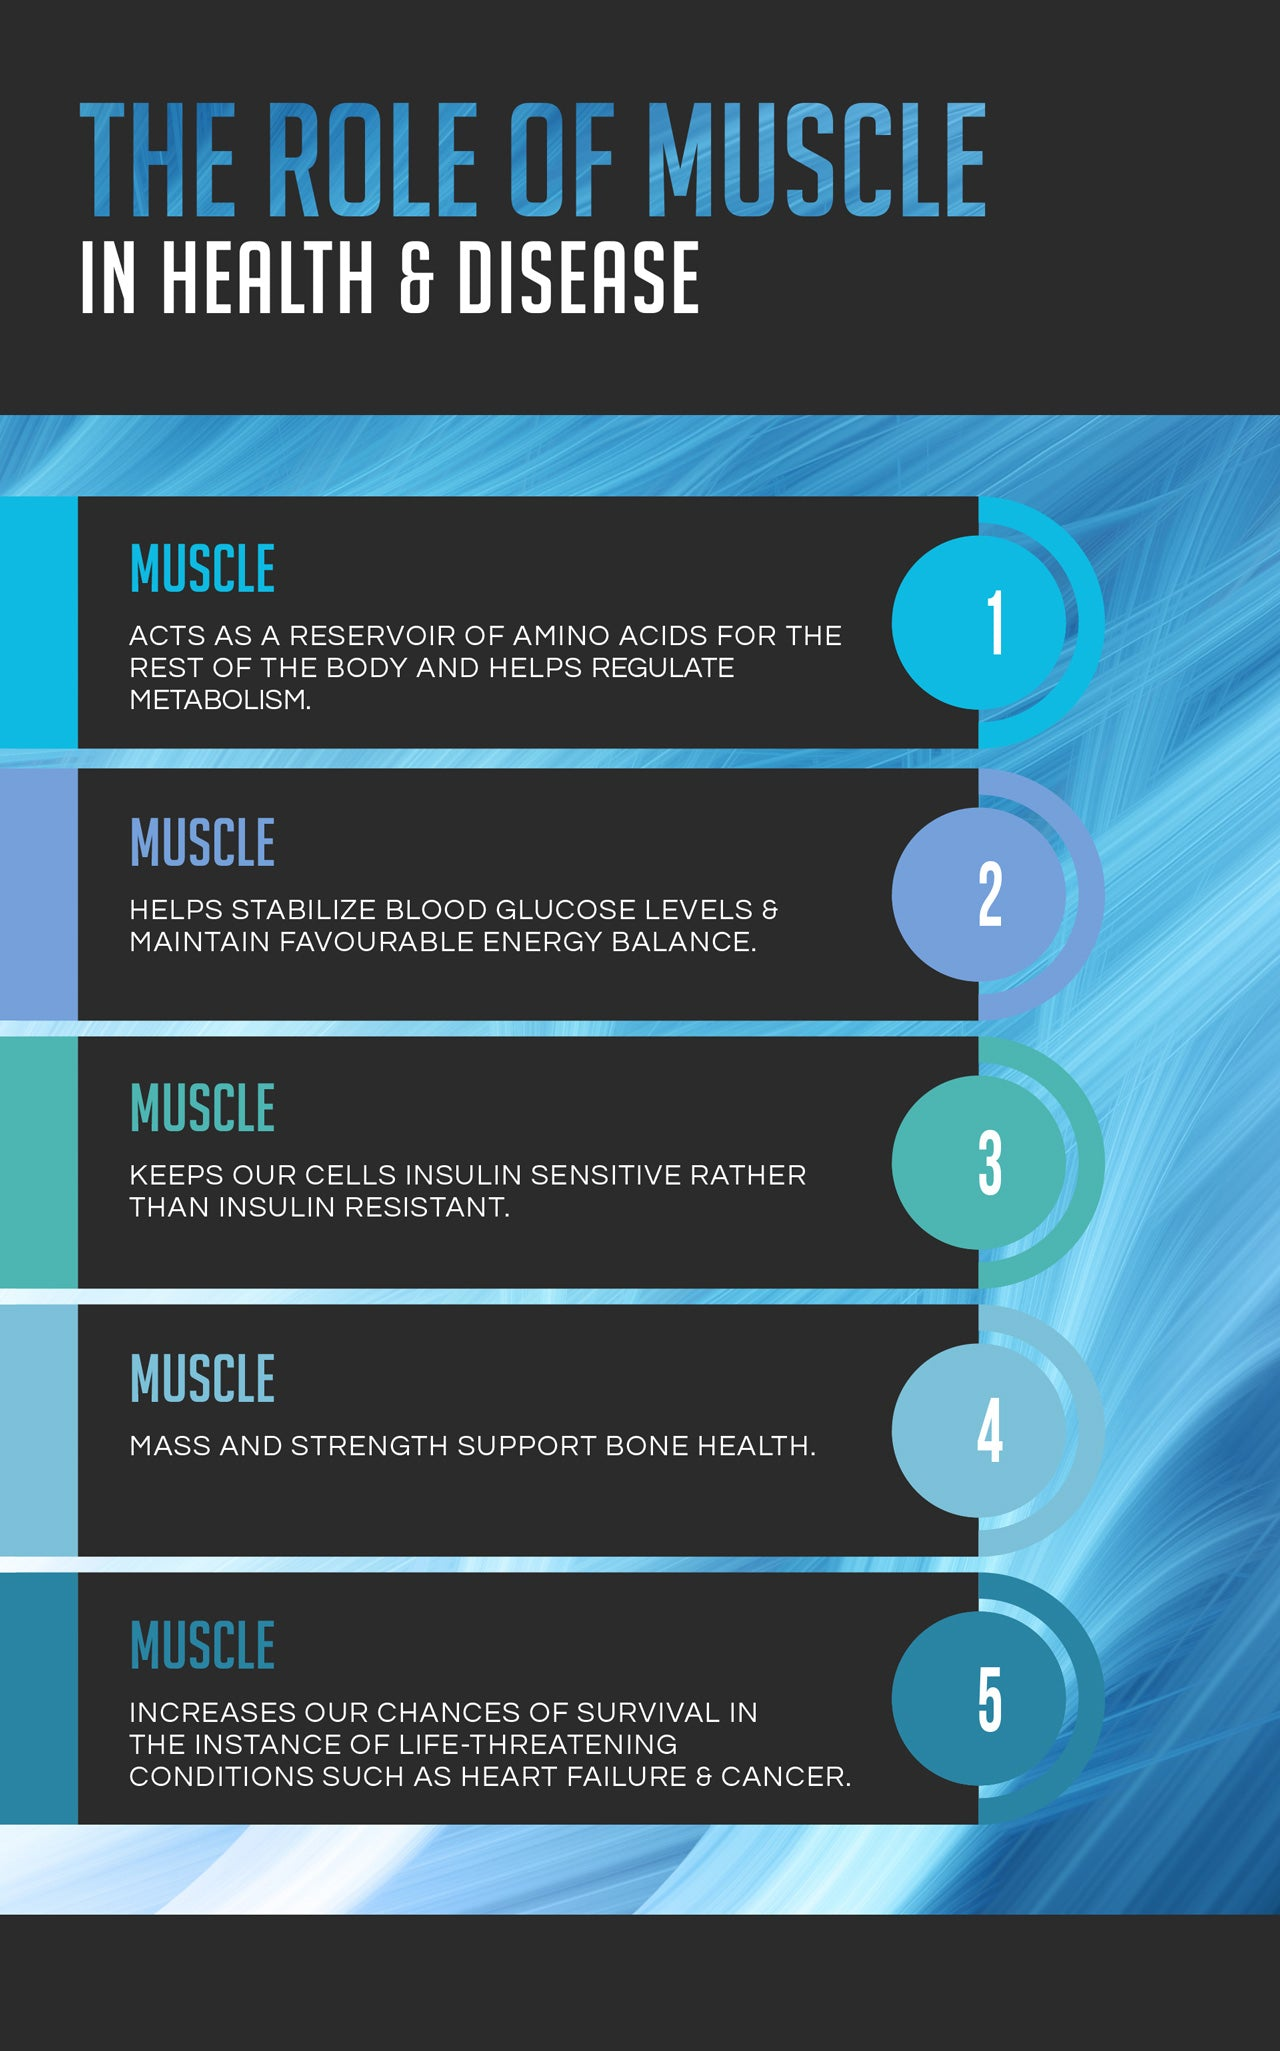 The Role of Muscle in Health and Disease